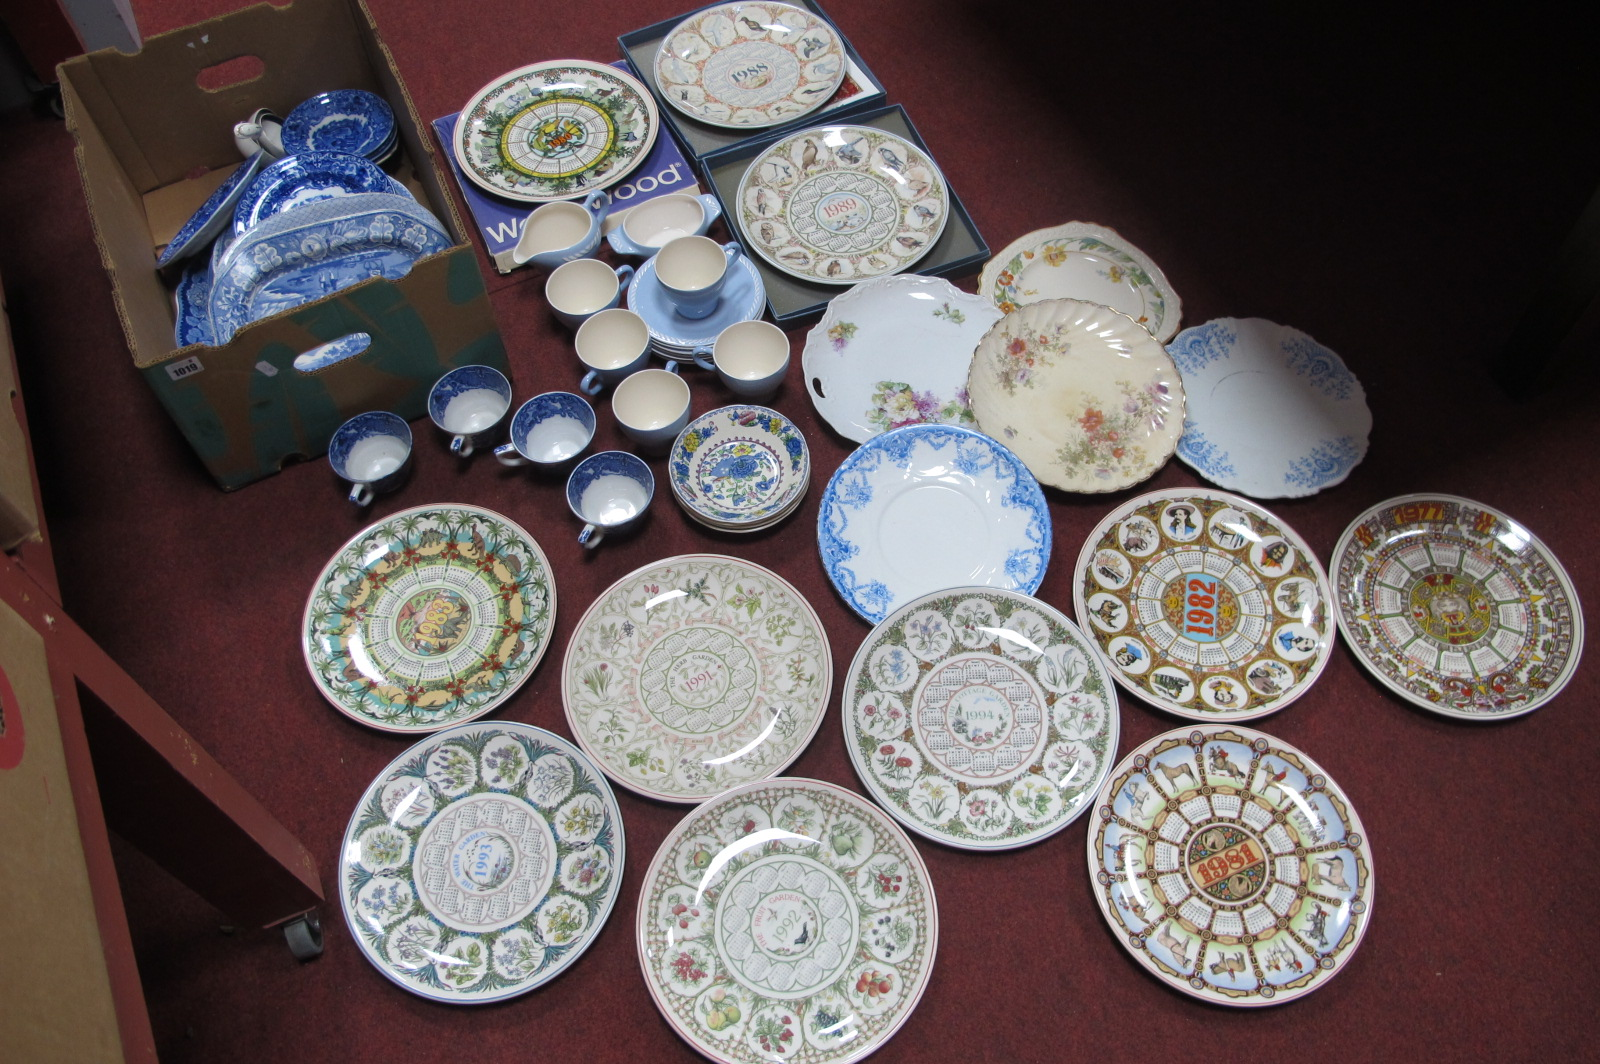 Figgjo Flint Norway Teaware, of twelve pieces, George Jones and other blue and white pottery ladles,